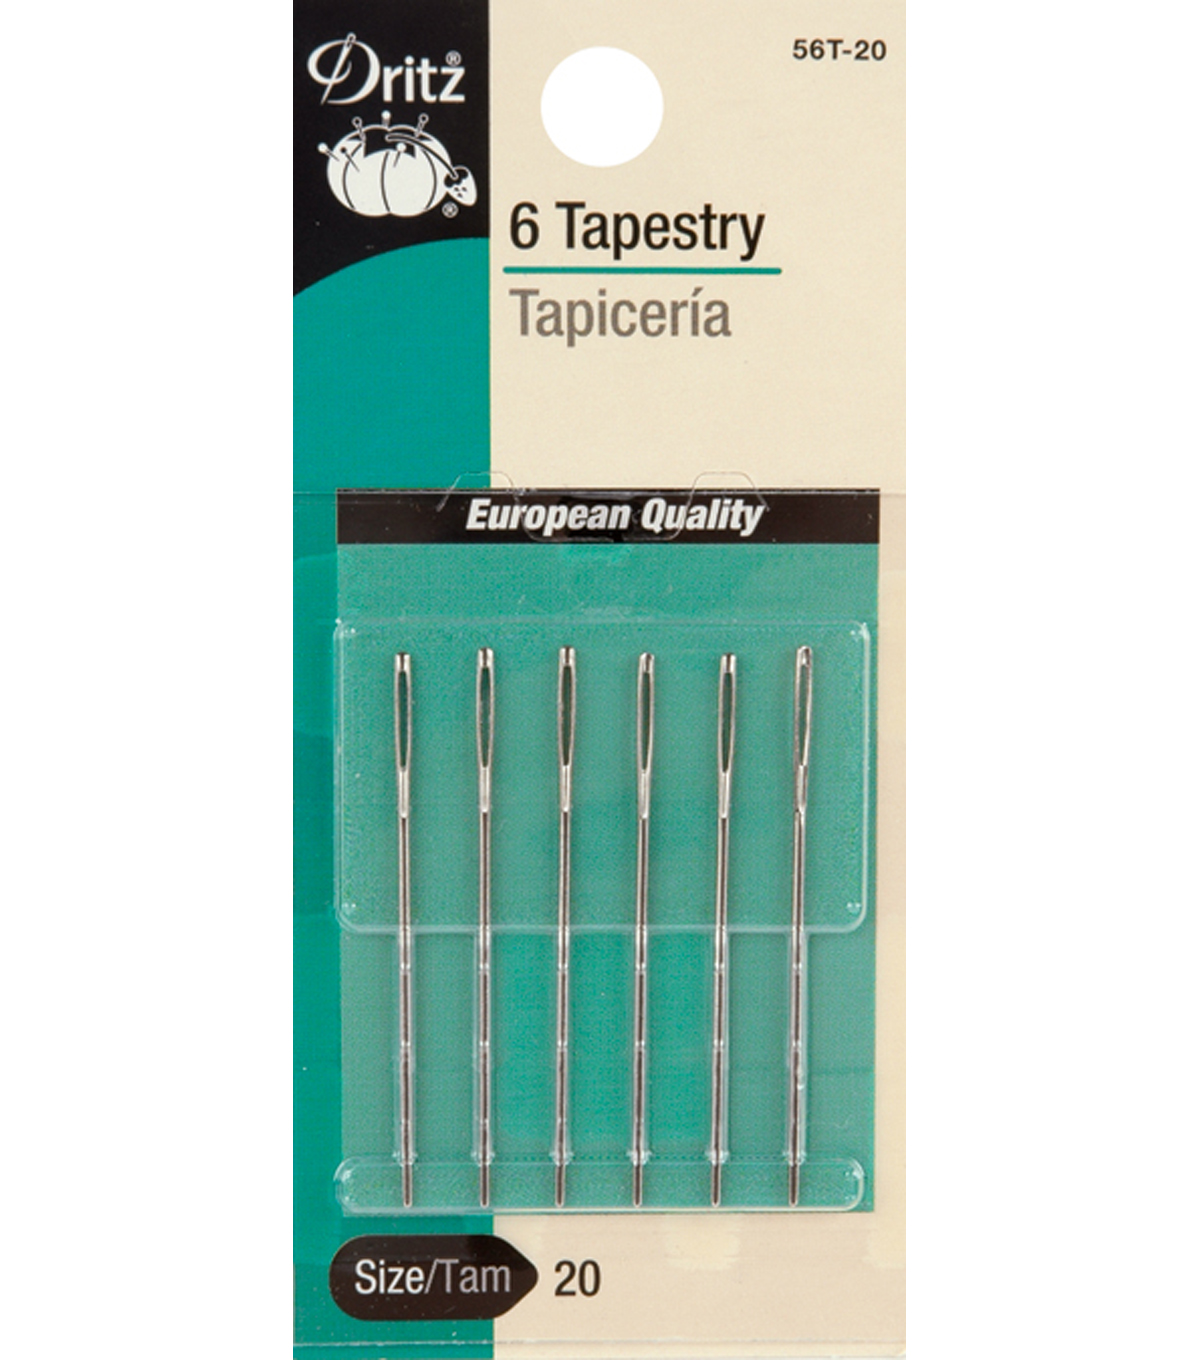 Dritz Tapestry Hand Needles 6pcs Size 24/26